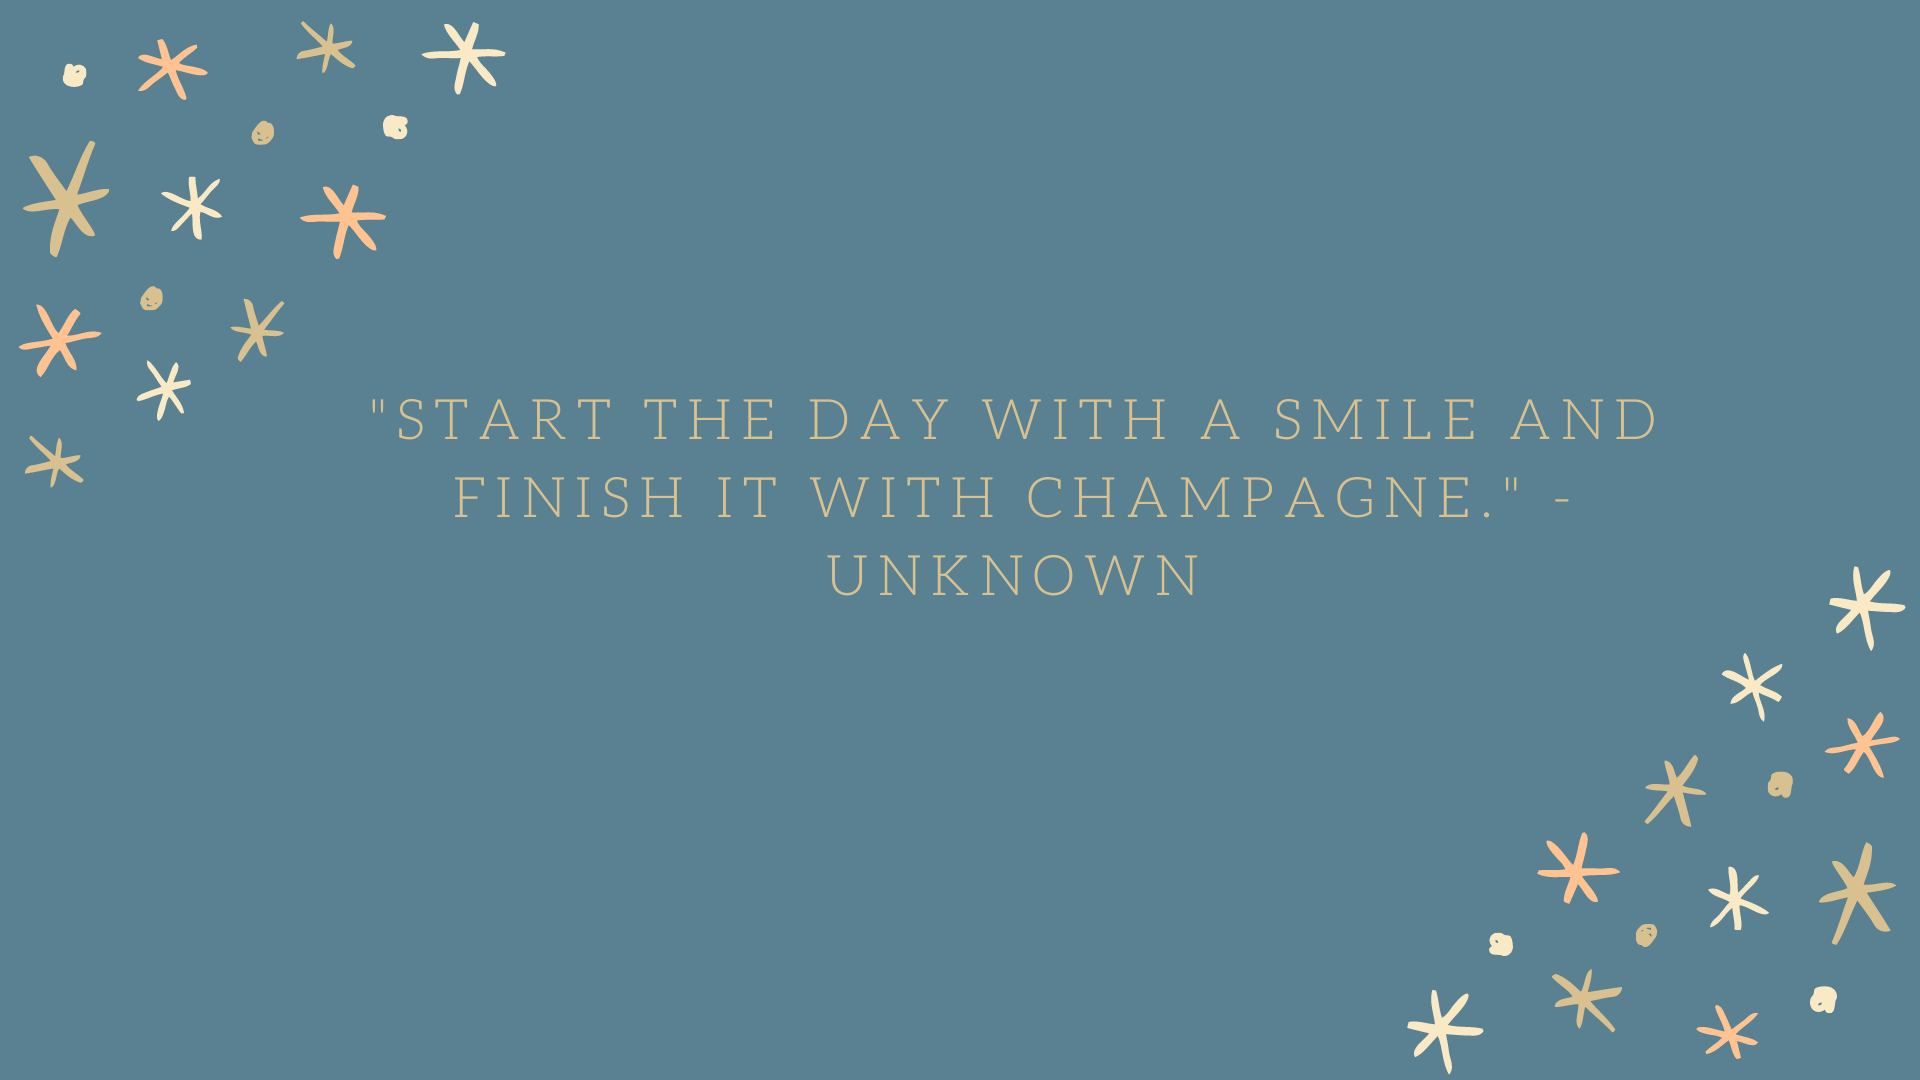 Start the day with a smile and finish it with champagne. | Unknown